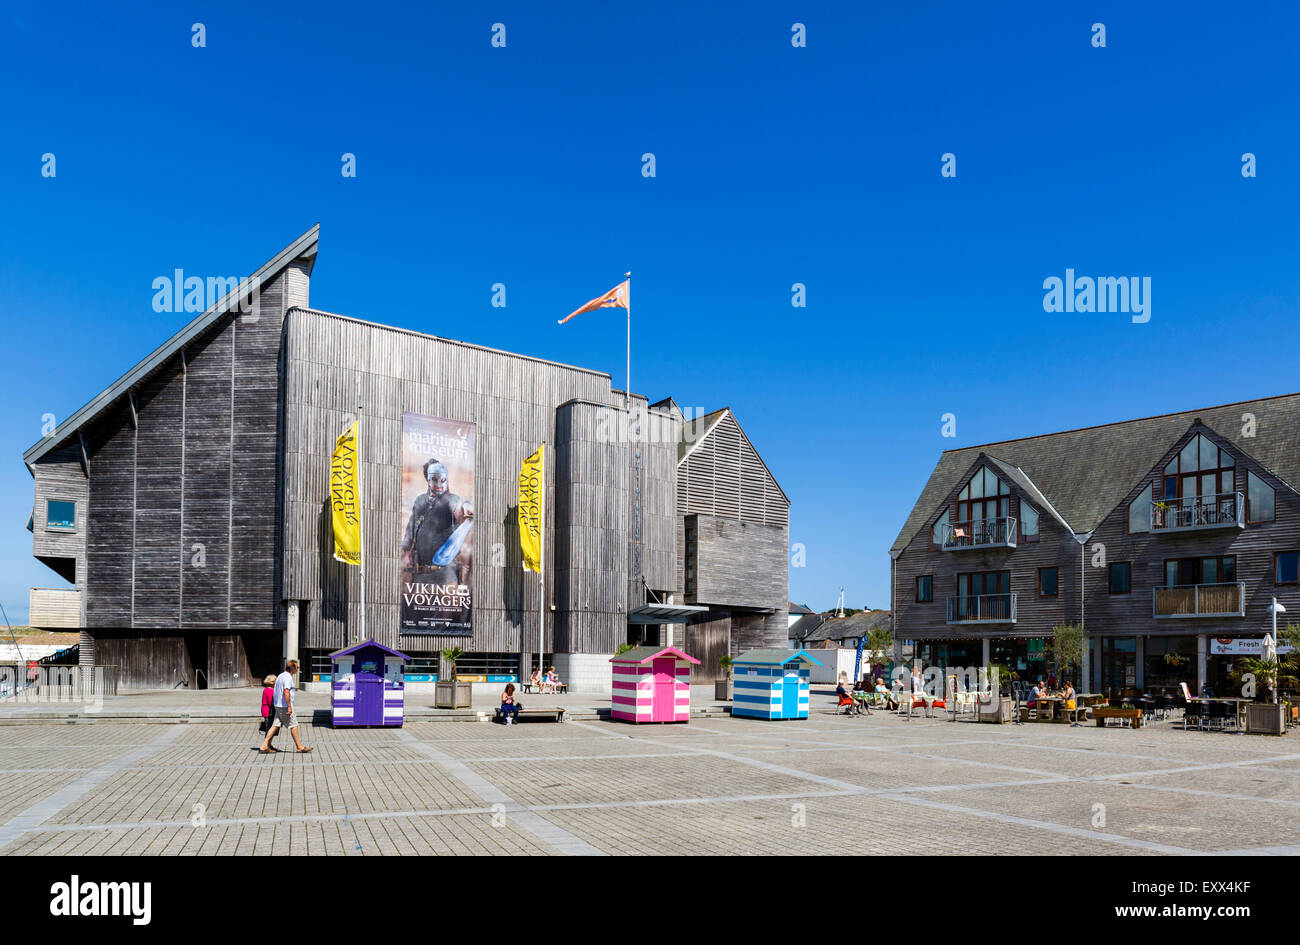 National Maritime Museum, Discovery Quay, Falmouth, Cornwall, England, UK - Stock Image